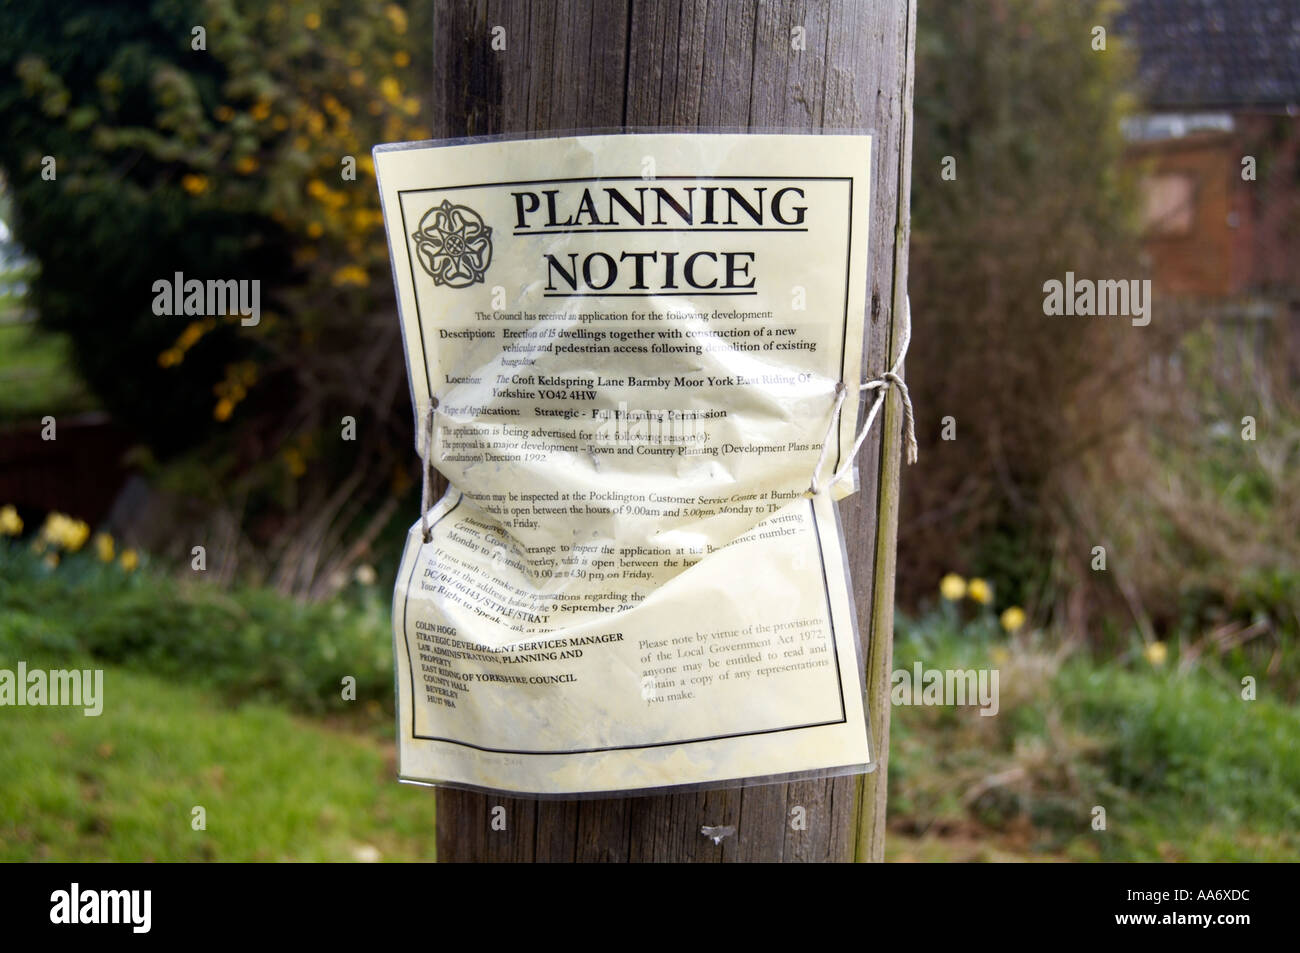 Planning Application notice issued by local authority fix to a telegraph pole - Stock Image